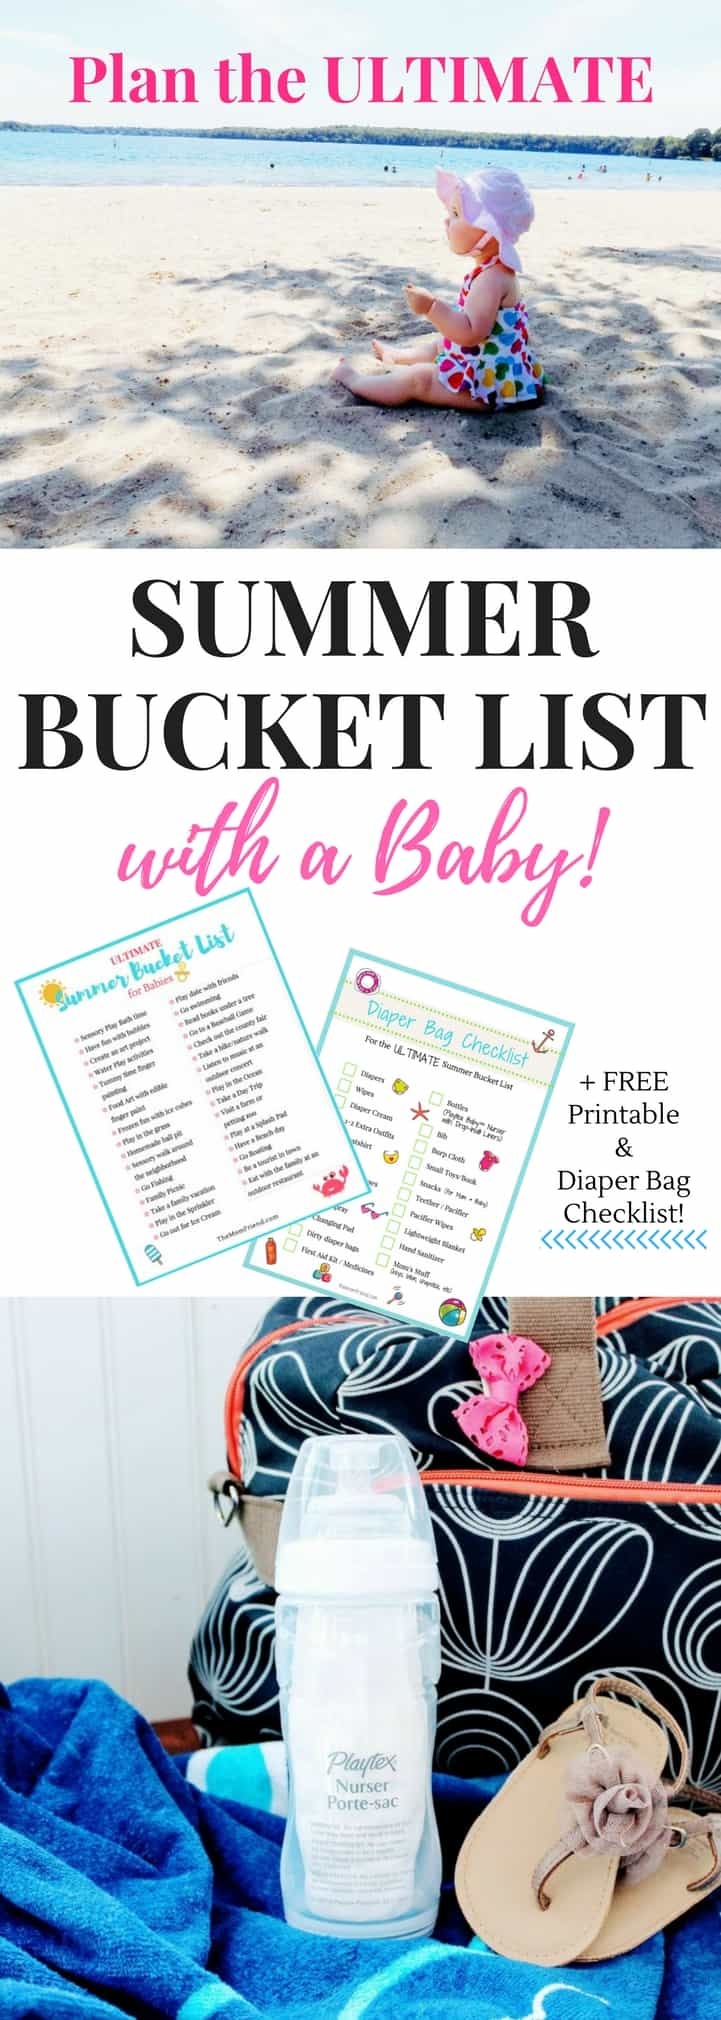 GREAT ideas on this Ultimate Summer Bucket List for Babies to create fun and lasting memories with your infant. Get out and explore, or engage in sensory play at home with these easy ideas. *FREE PRINTABLE Summer Bucket List + bonus FREE Diaper Bag Checklist* to keep you prepared! | summer activities for babies | summer ideas for toddlers | kids activities | play with baby | how to pack a diaper bag | diaper bag essentials | diaper bag for travel